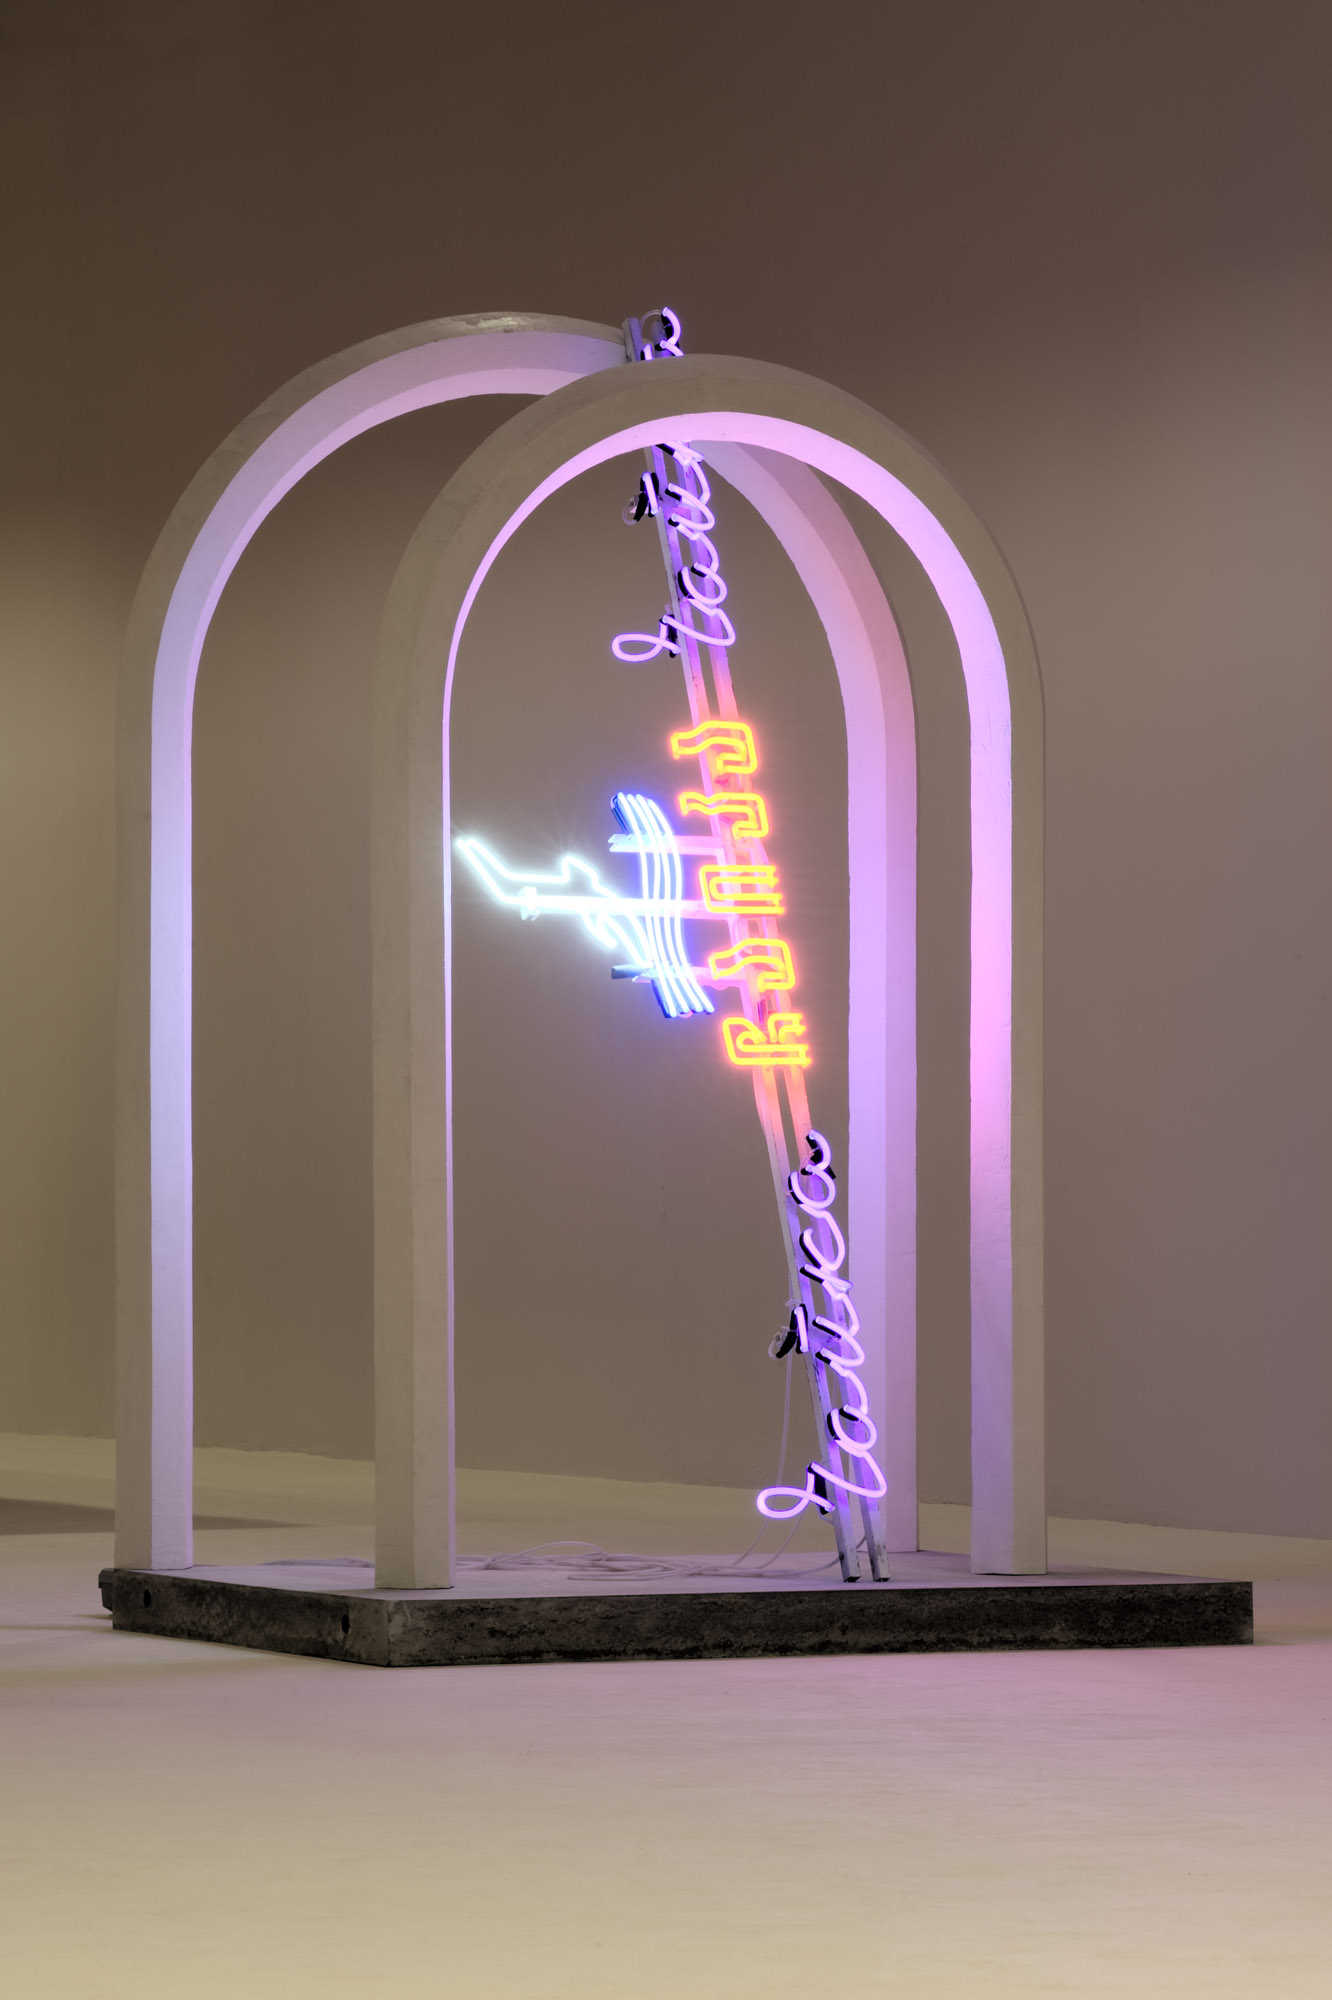 Andro Wekua - Neon with Arches - 2010-11 - photo Nils Klinger